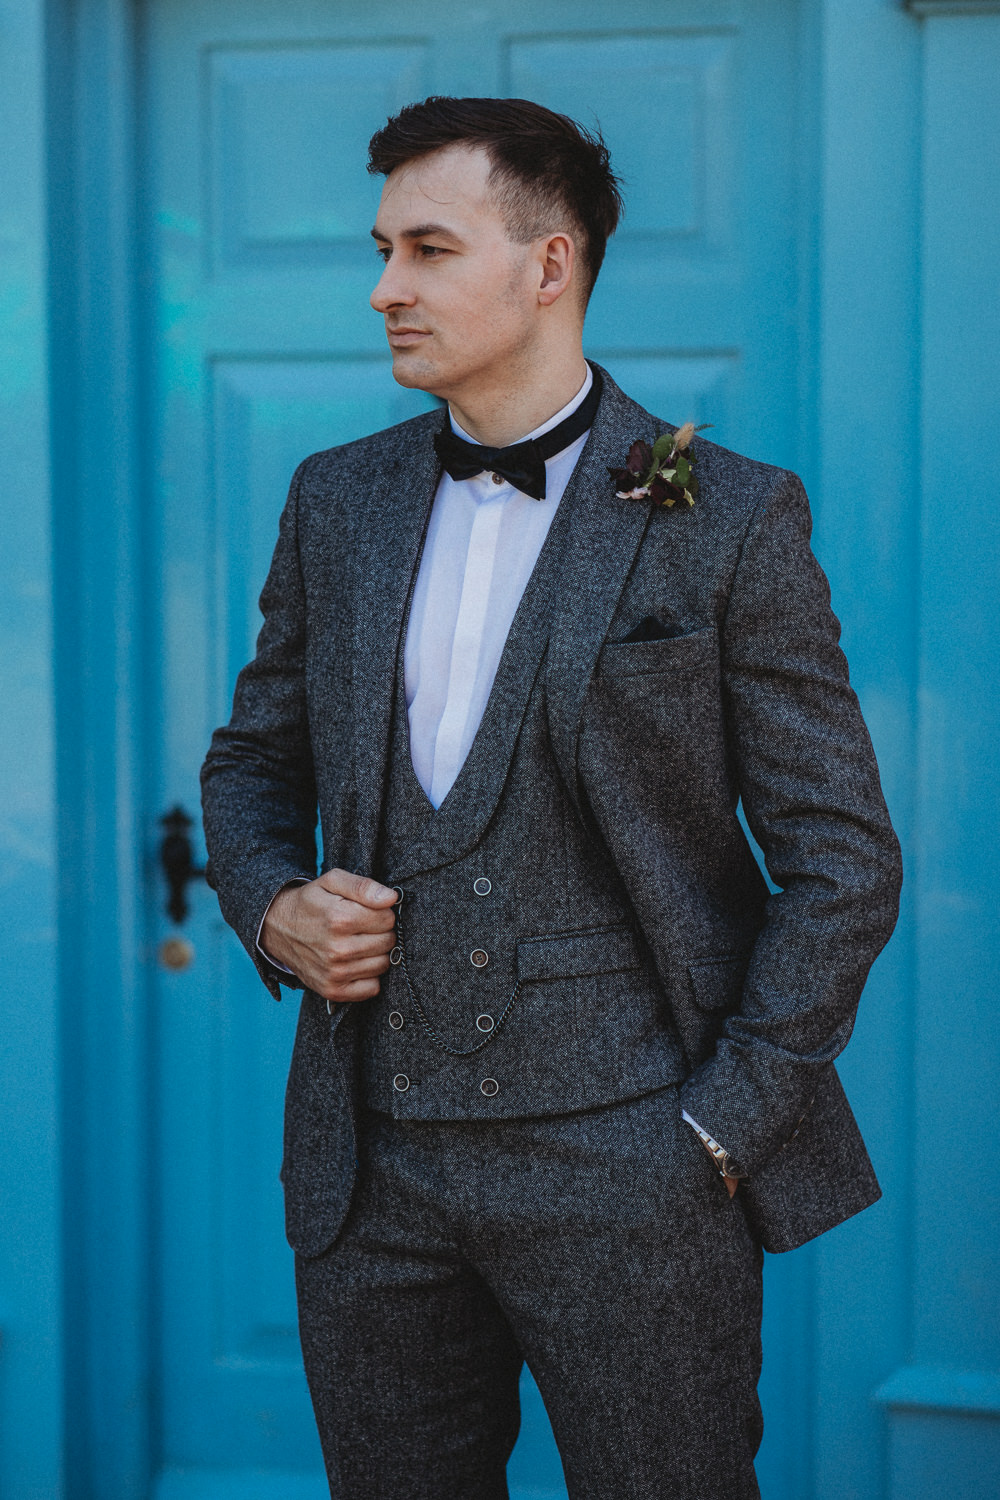 Groom Tweed Suit Bow Tie Waistcoat Barn Wedding Ideas Thyme Lane Photography